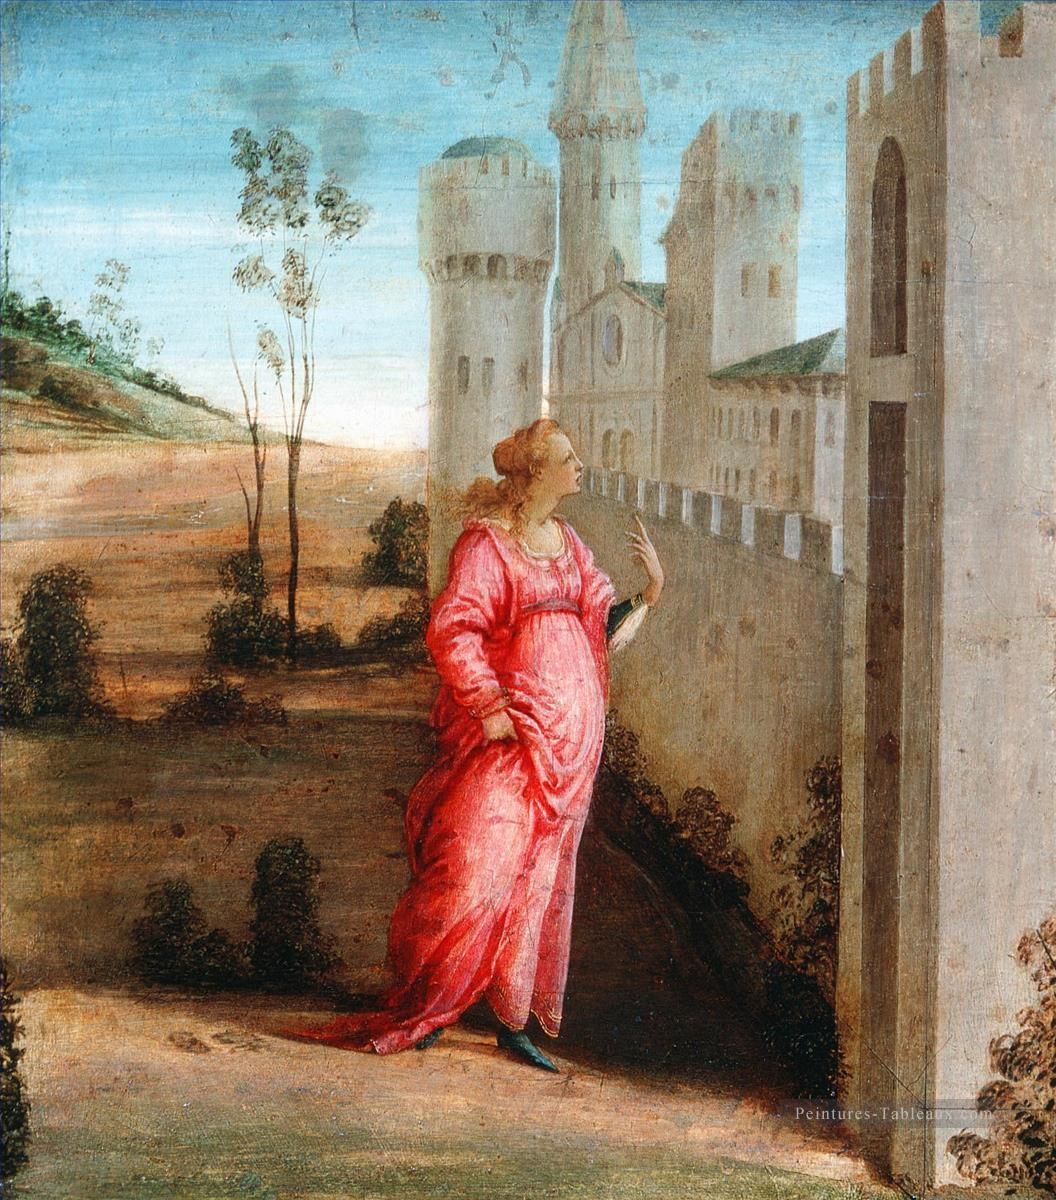 Sandro Botticelli : Esther at the Palace Gate (National Gallery of Canada) 1445 -1510 サンドロ・ボッティチェッリ